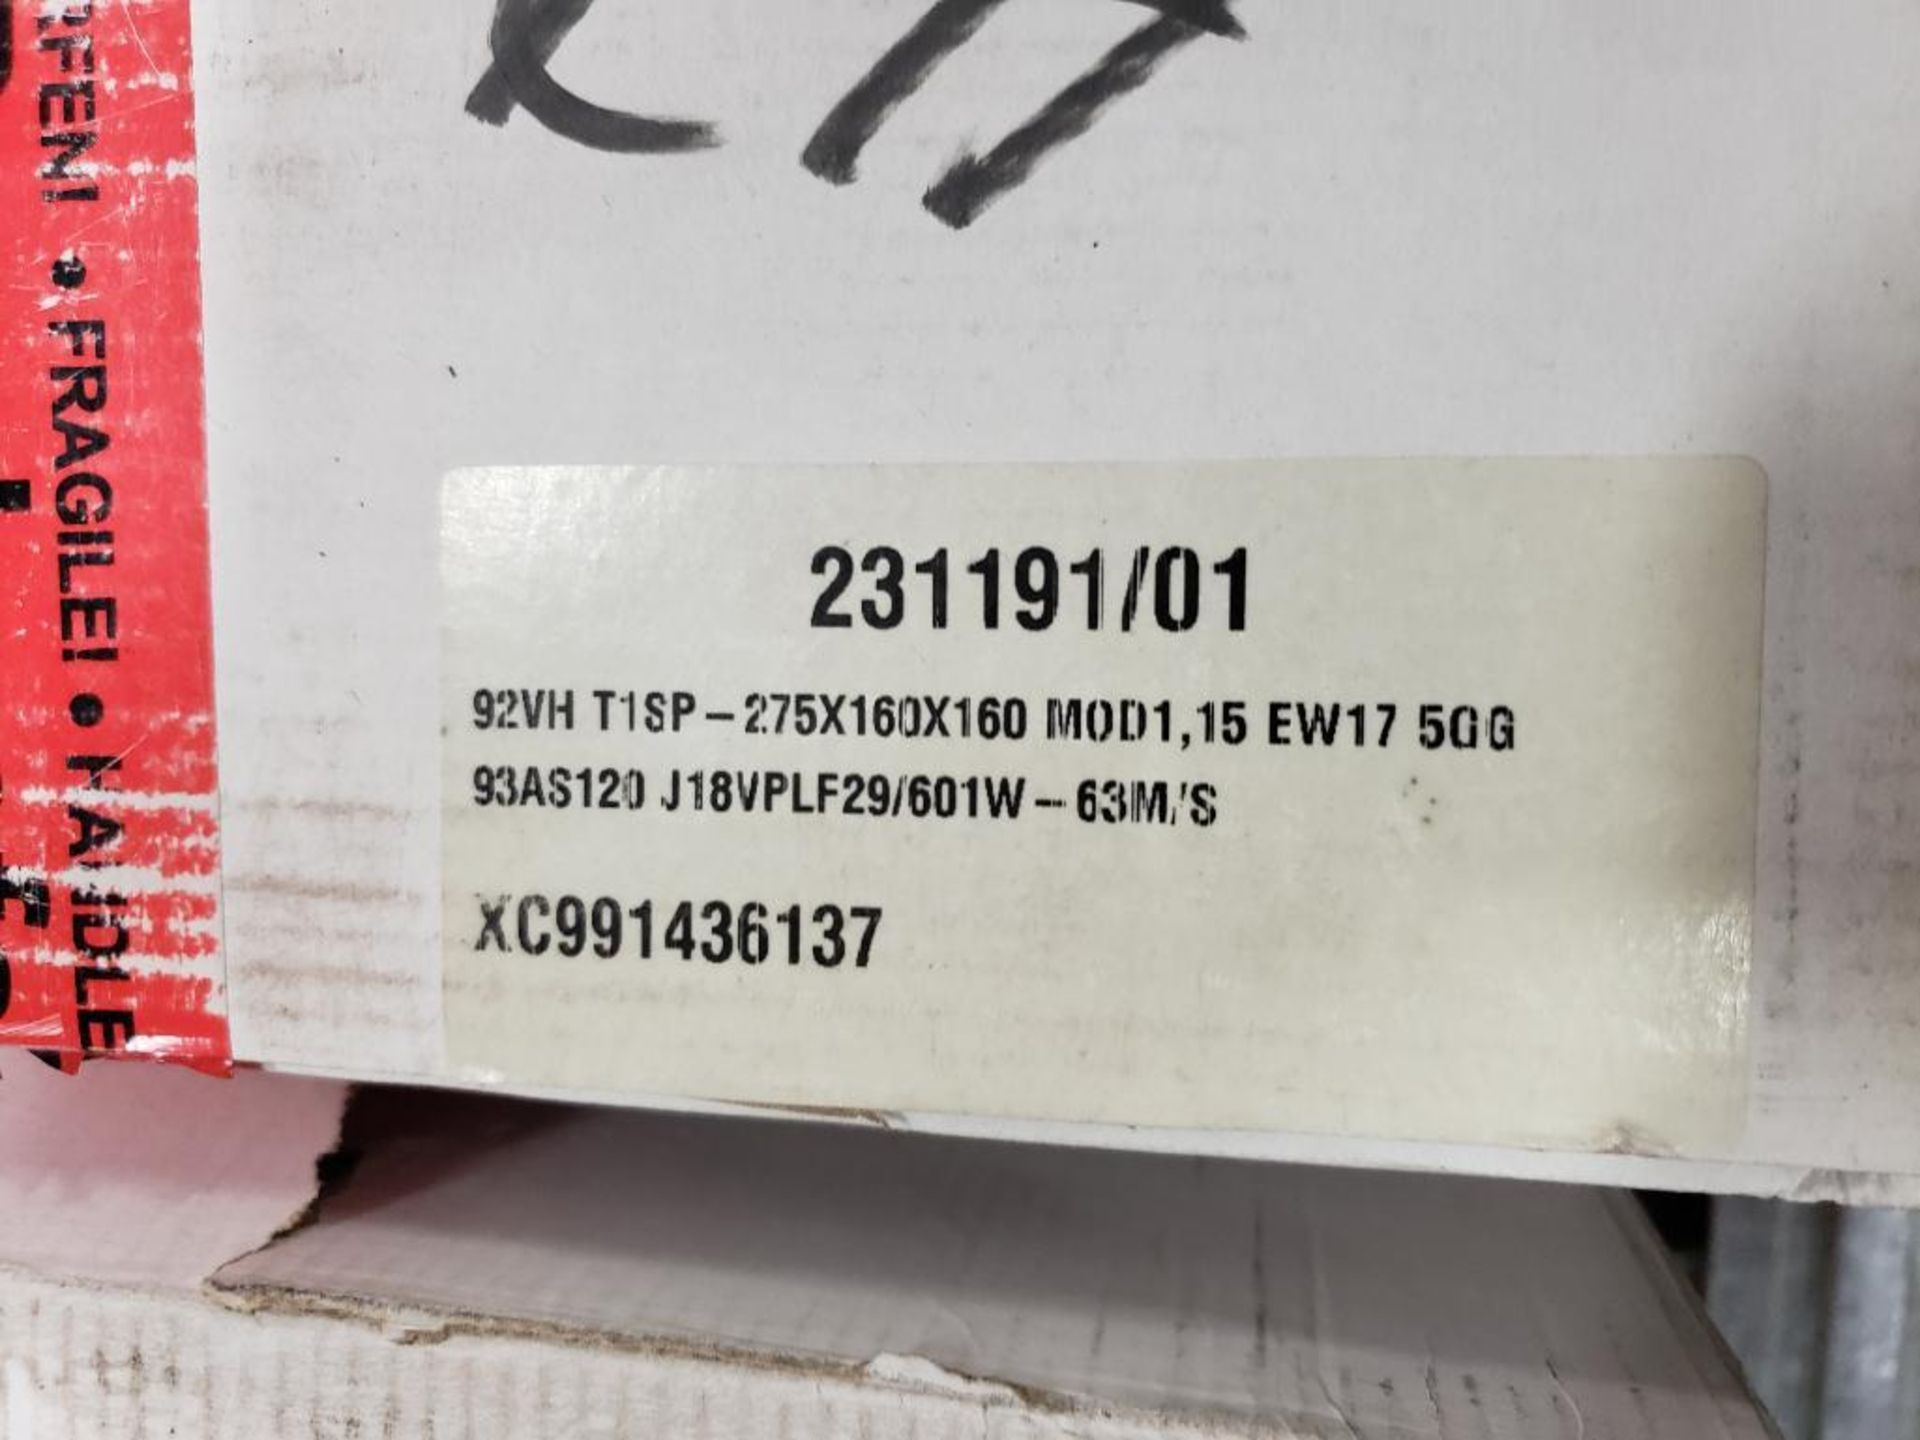 Qty 6 - assorted 3M abrasive grinding wheel. 275x160x160. New in Box. - Image 3 of 6